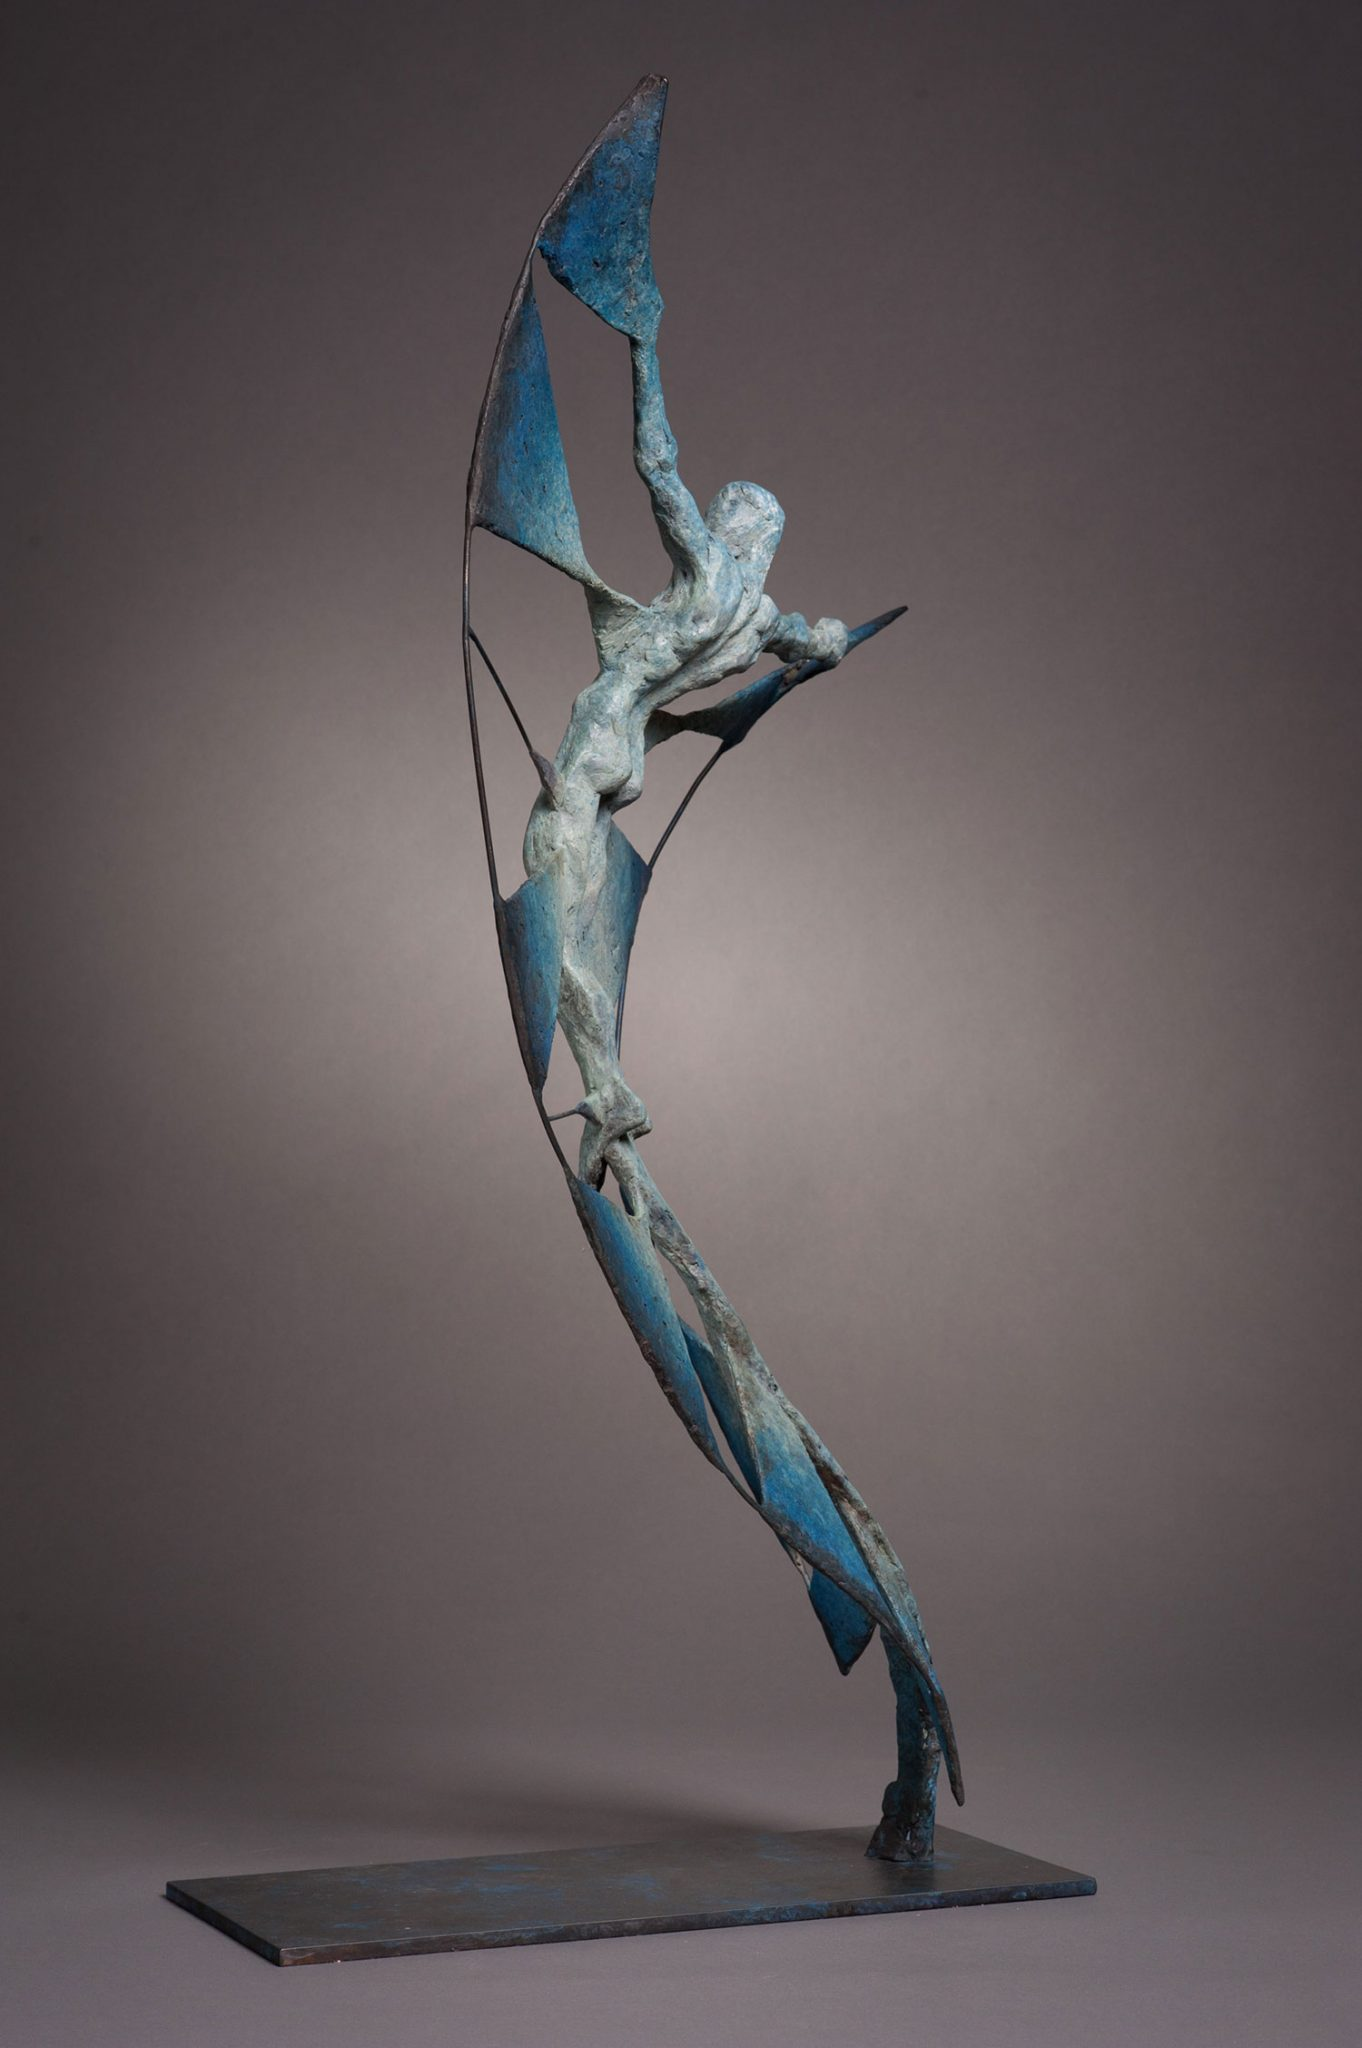 Vol d'Etincelle II. Spark II. Bronze abstract figurative sculpture.